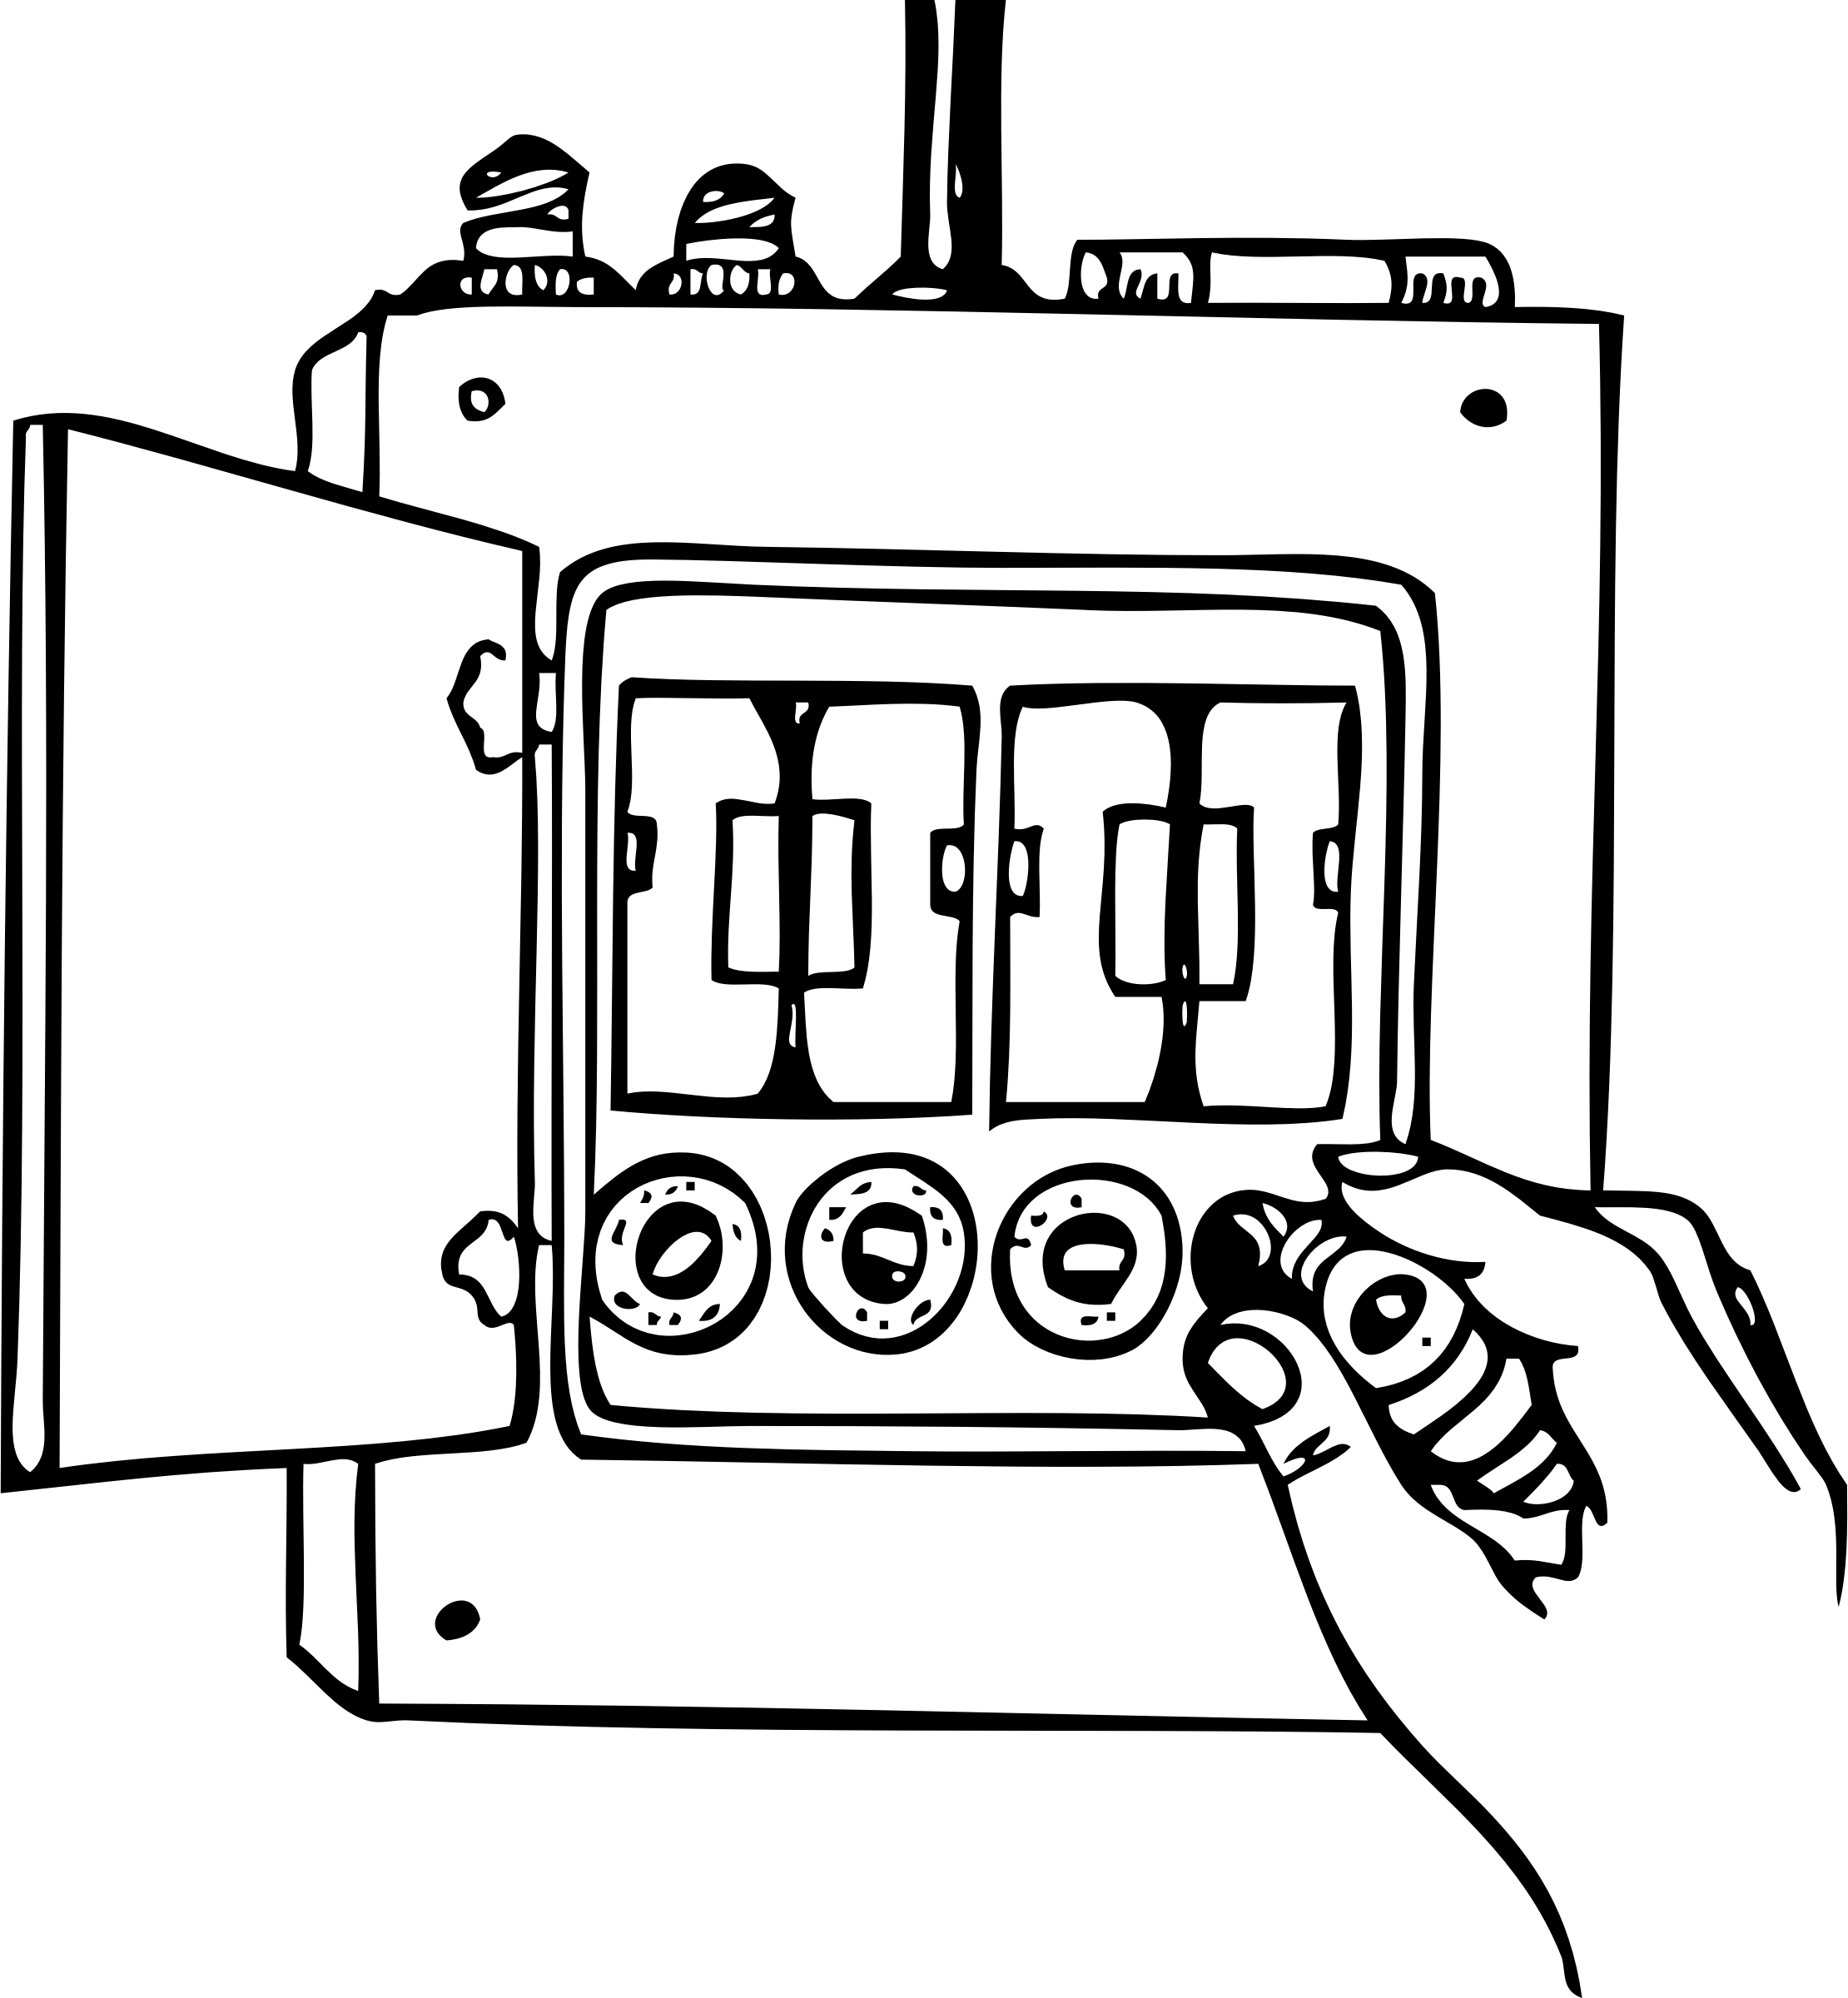 Fuse box icons free and icons downloads rh icons electrical fuse drawing fuse